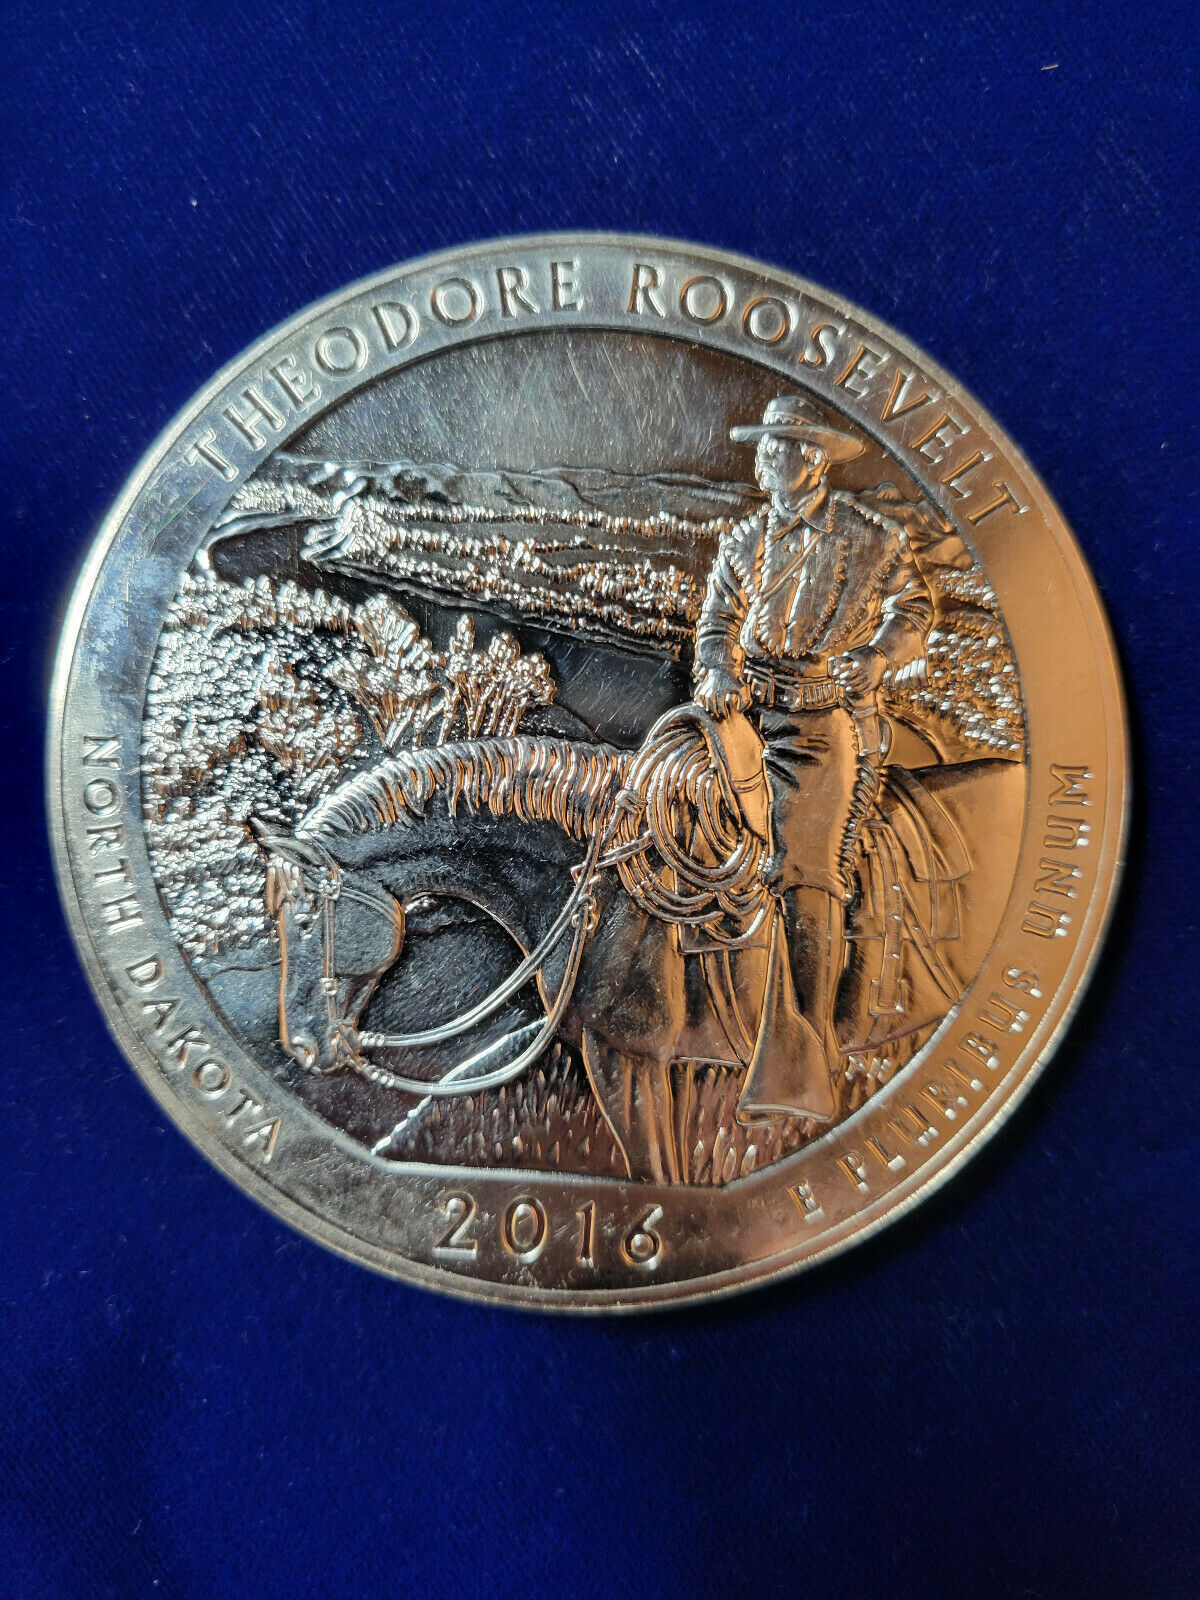 2016 America The Beautiful Theodore Roosevelt 5oz Silver Coin In Capsule - $164.99